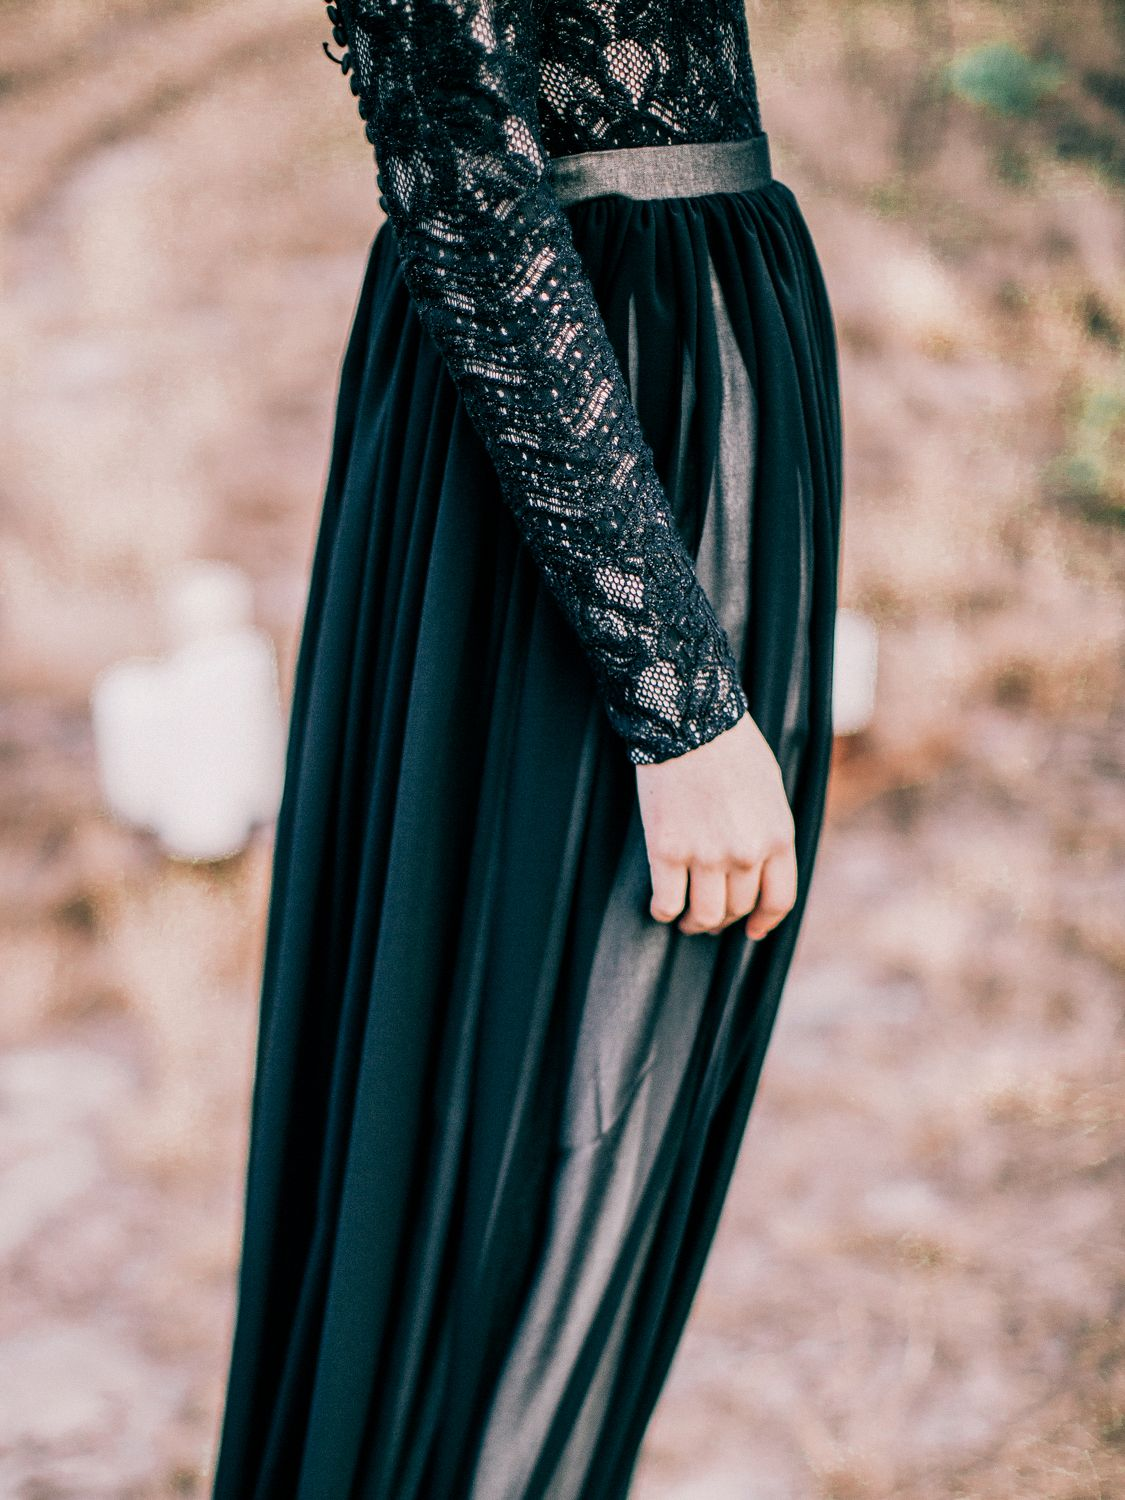 Black highnecked lace wedding dress with long sleeves